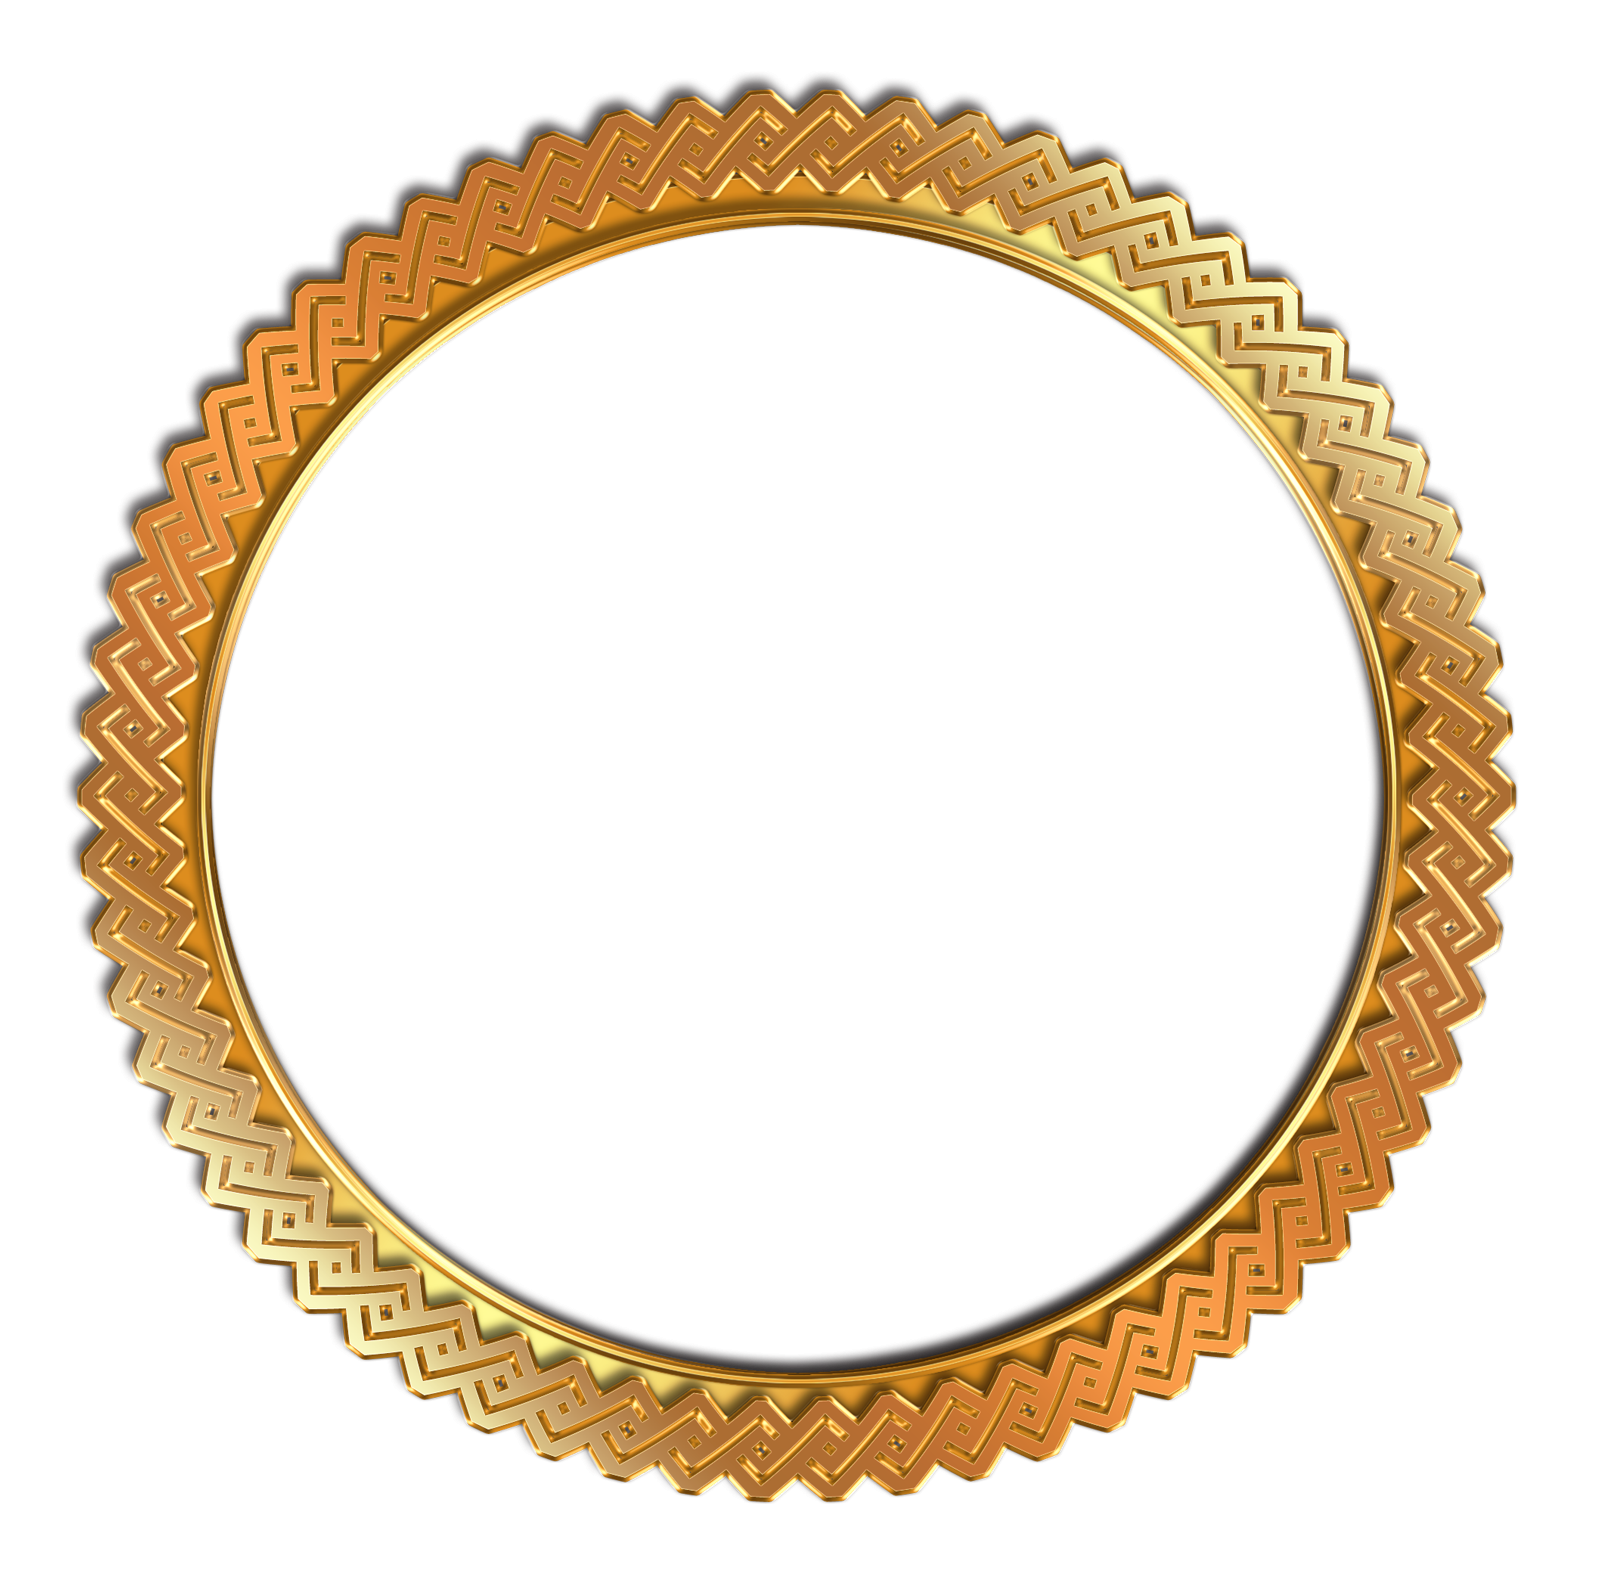 Gold circle png. Vintage photo frame transparent